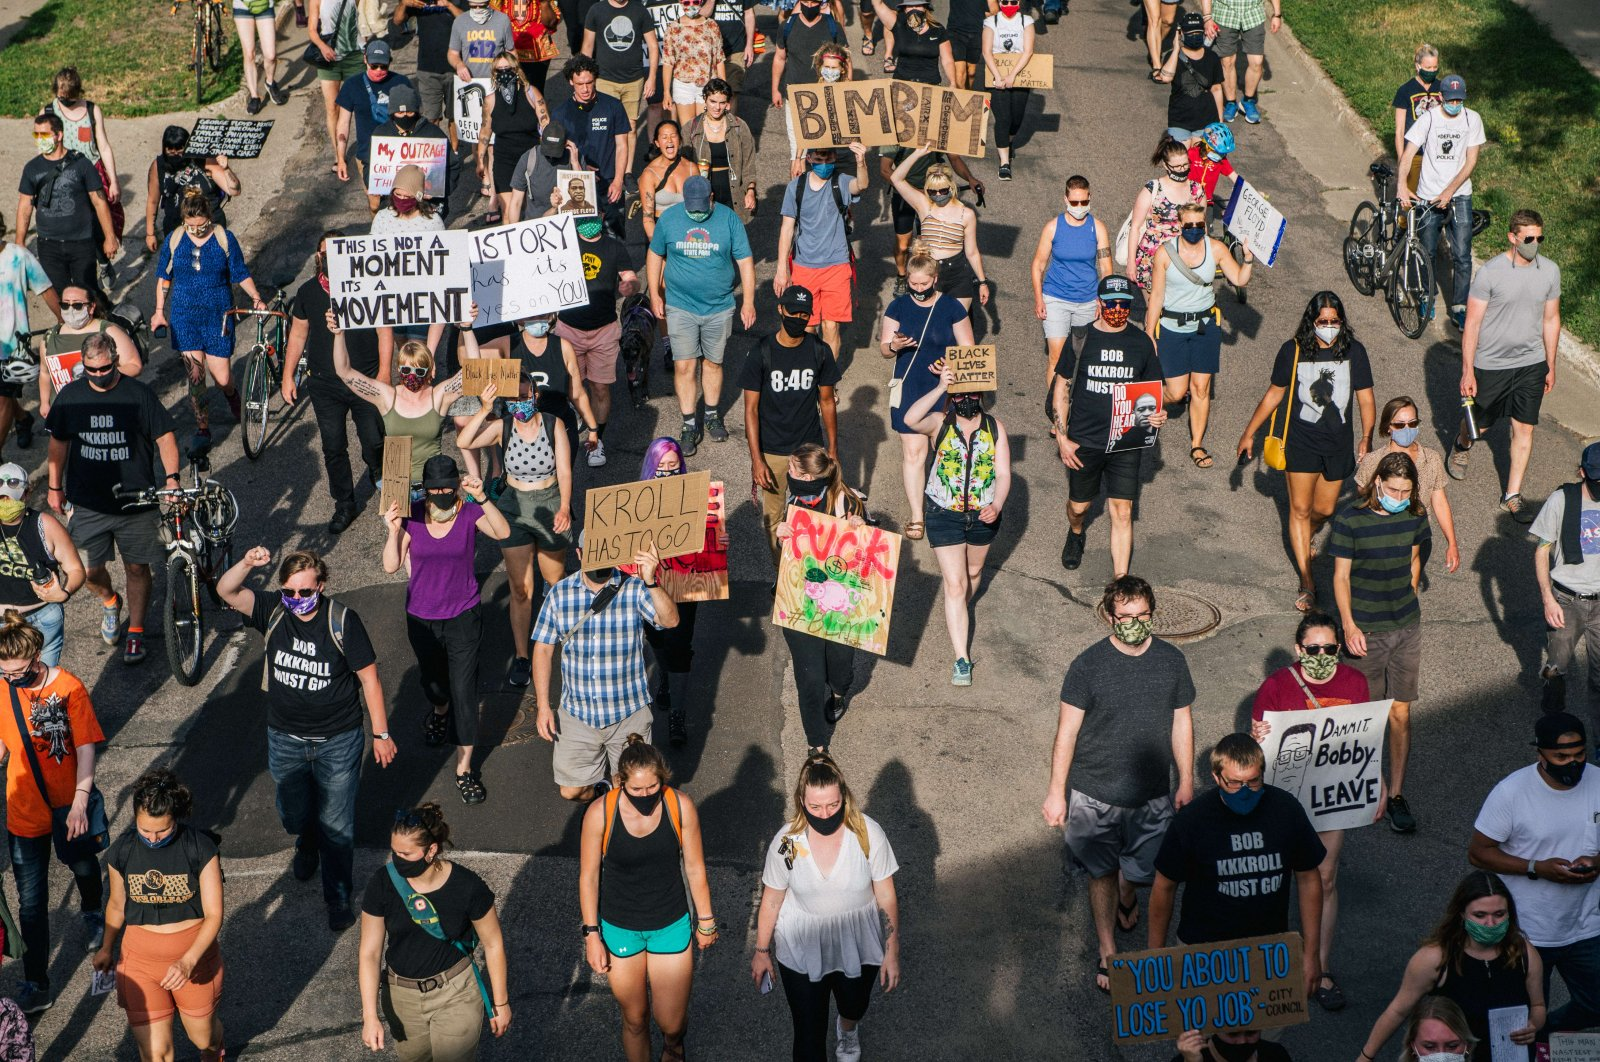 People march in the street, calling for Minneapolis Police Union Lt. Bob Kroll to be fired, in Minneapolis, Minnesota, June 25,2020. (AFP Photo)